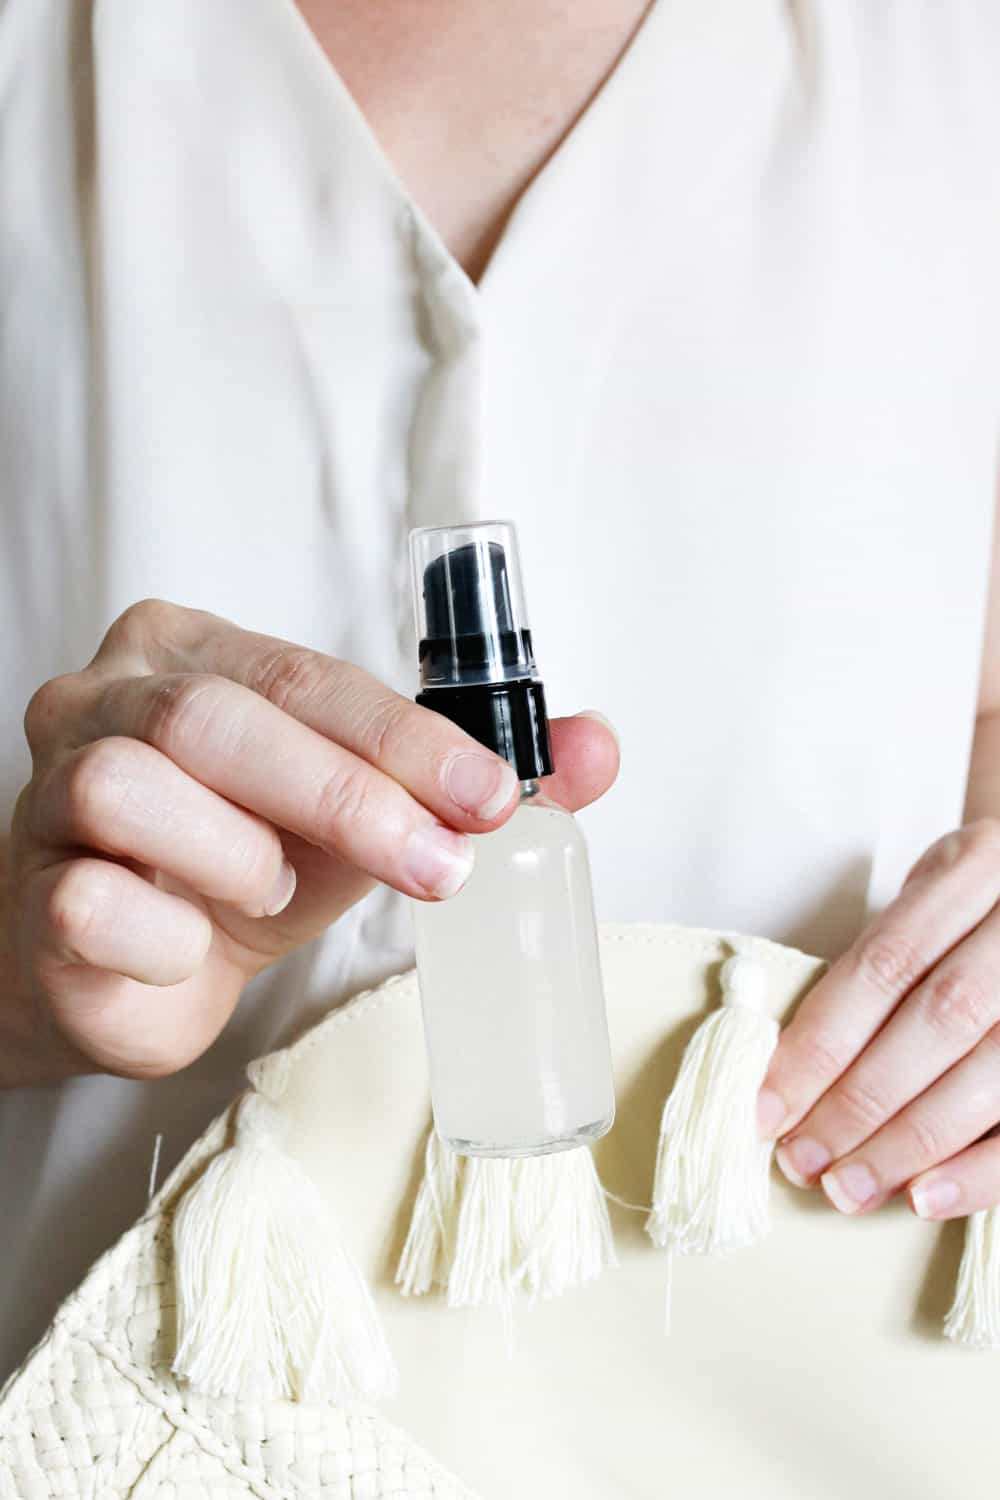 How to Make Hand Sanitizer with Essential Oils